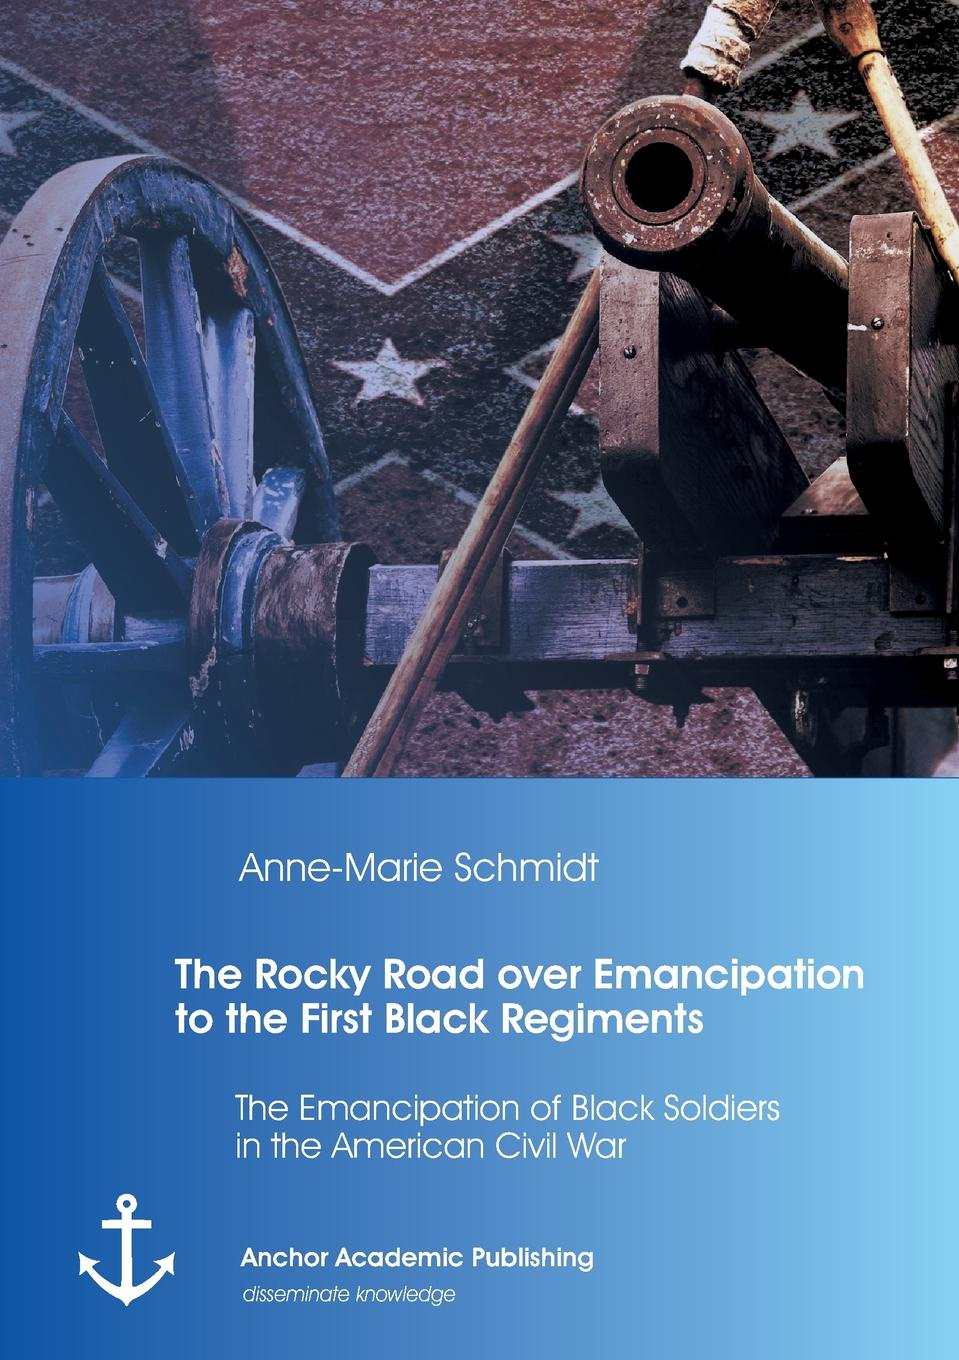 The Rocky Road over Emancipation to the First Black Regiments. The Emancipation of Black Soldiers in the American Civil War